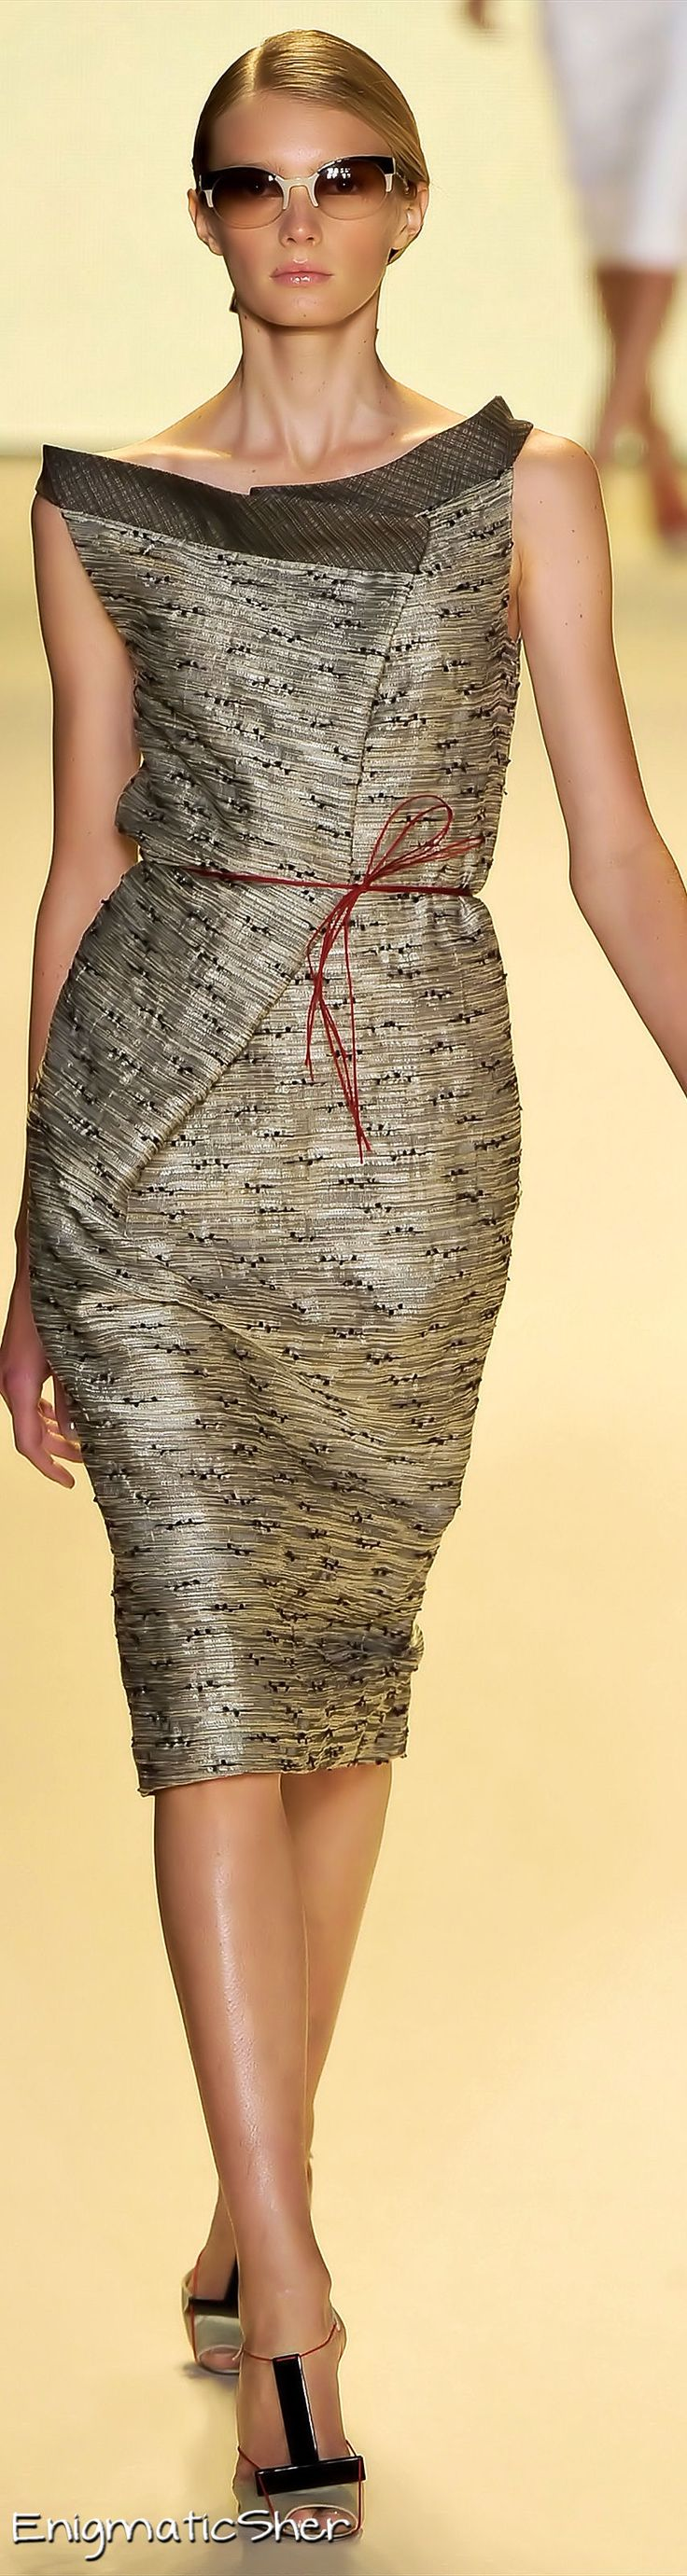 I'd just like some minor alterations at the shoulders. Carolina Herrera Spring Summer 2011 Ready-To-Wear